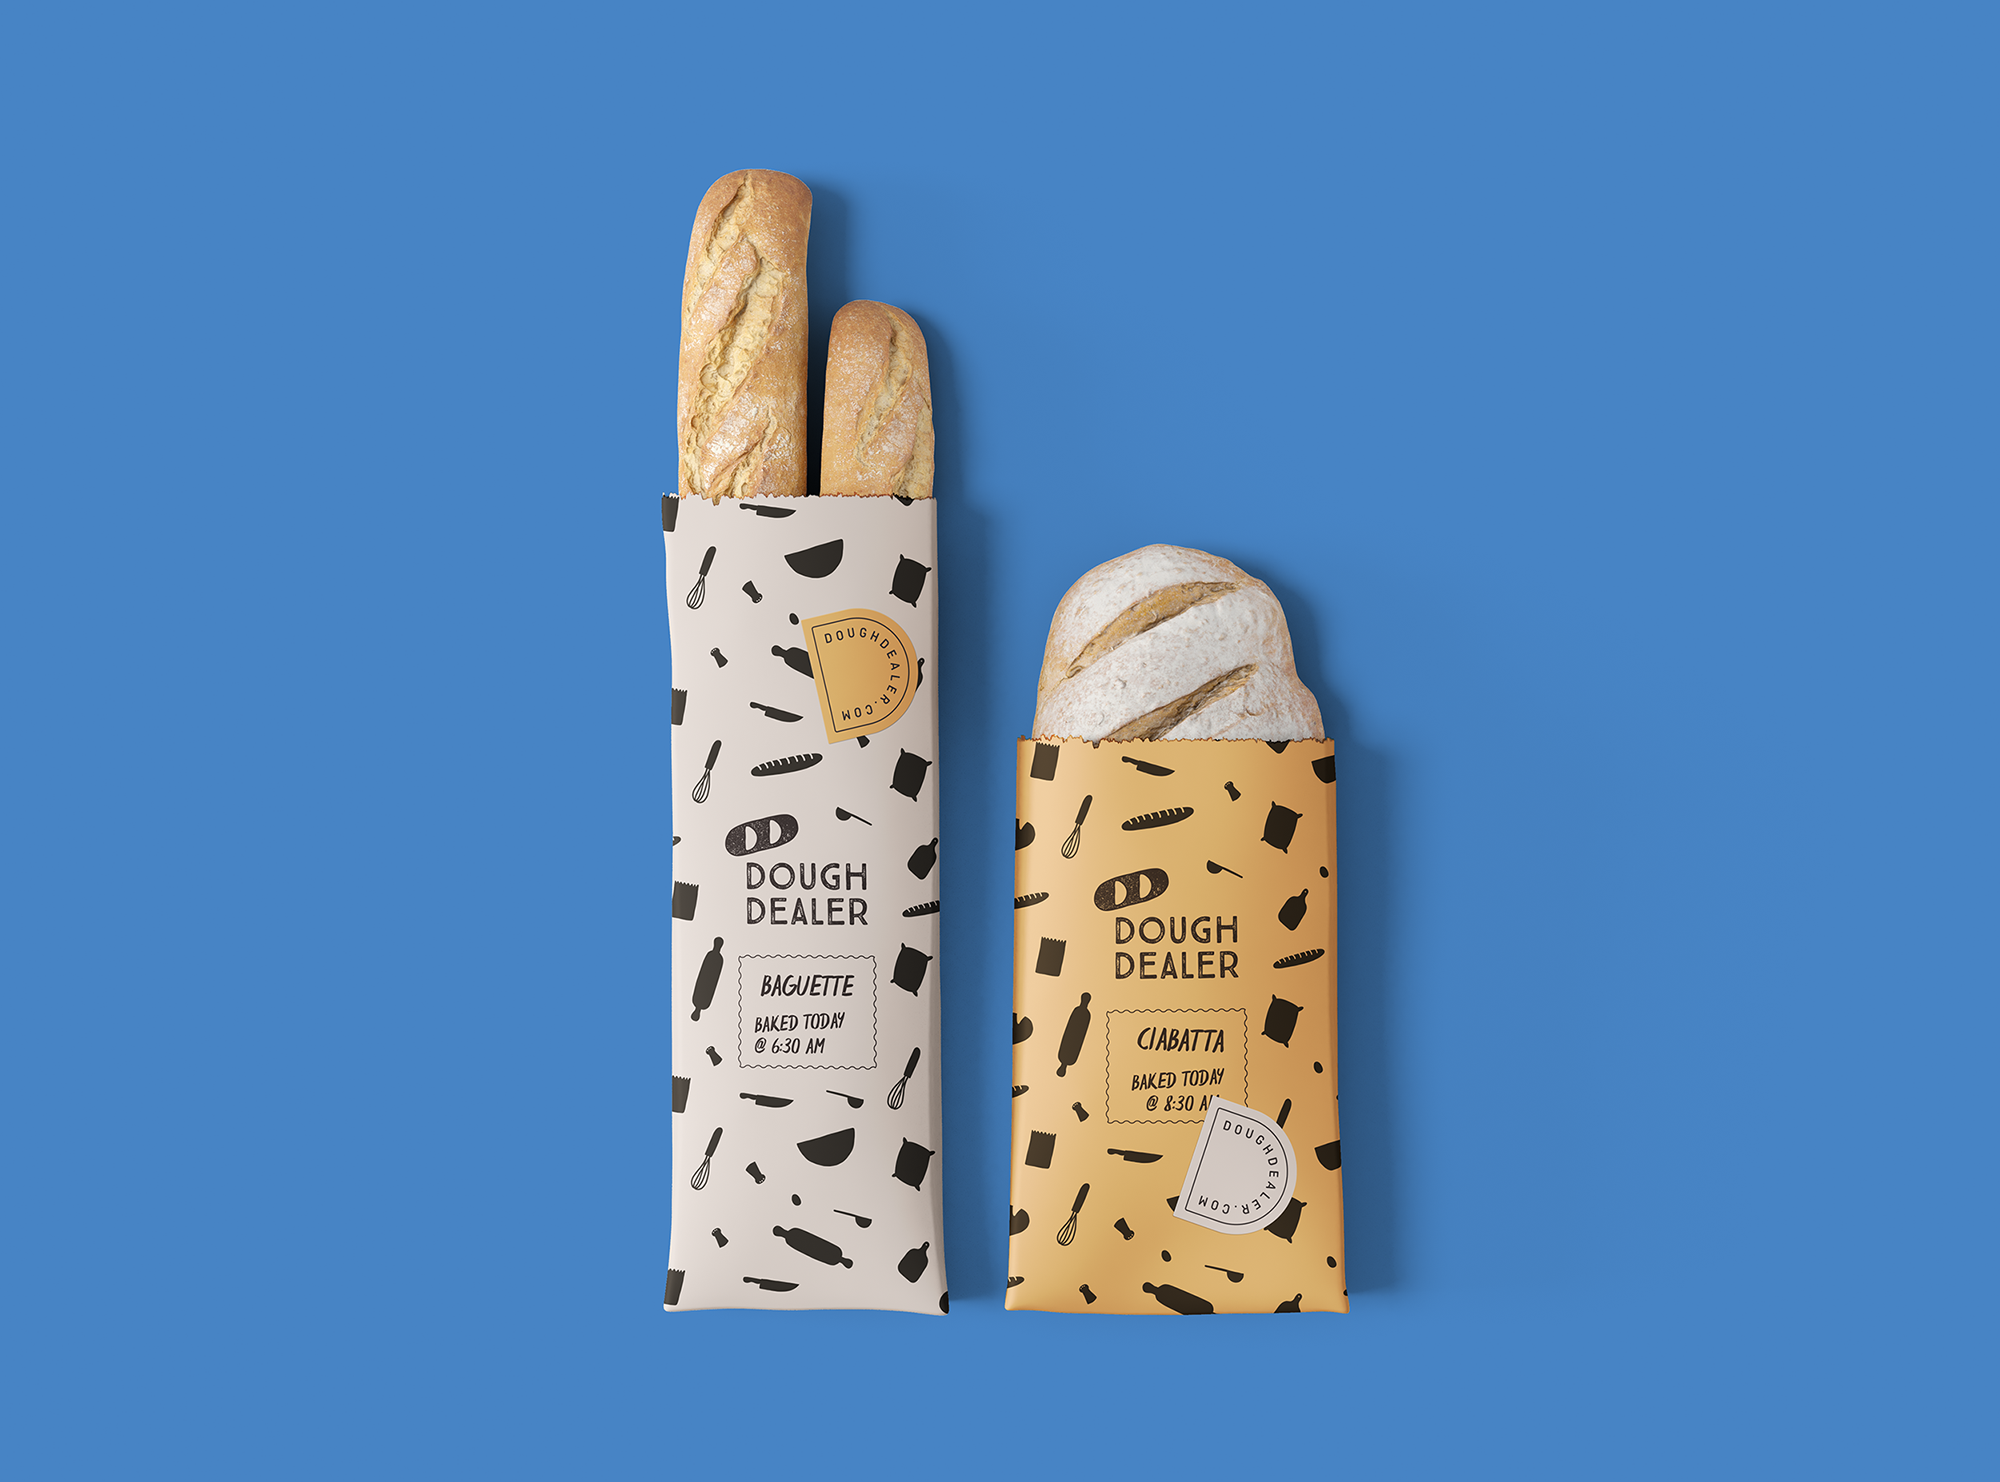 Dough Dealer Gets Bold and Fun Visual Identity by Borondo